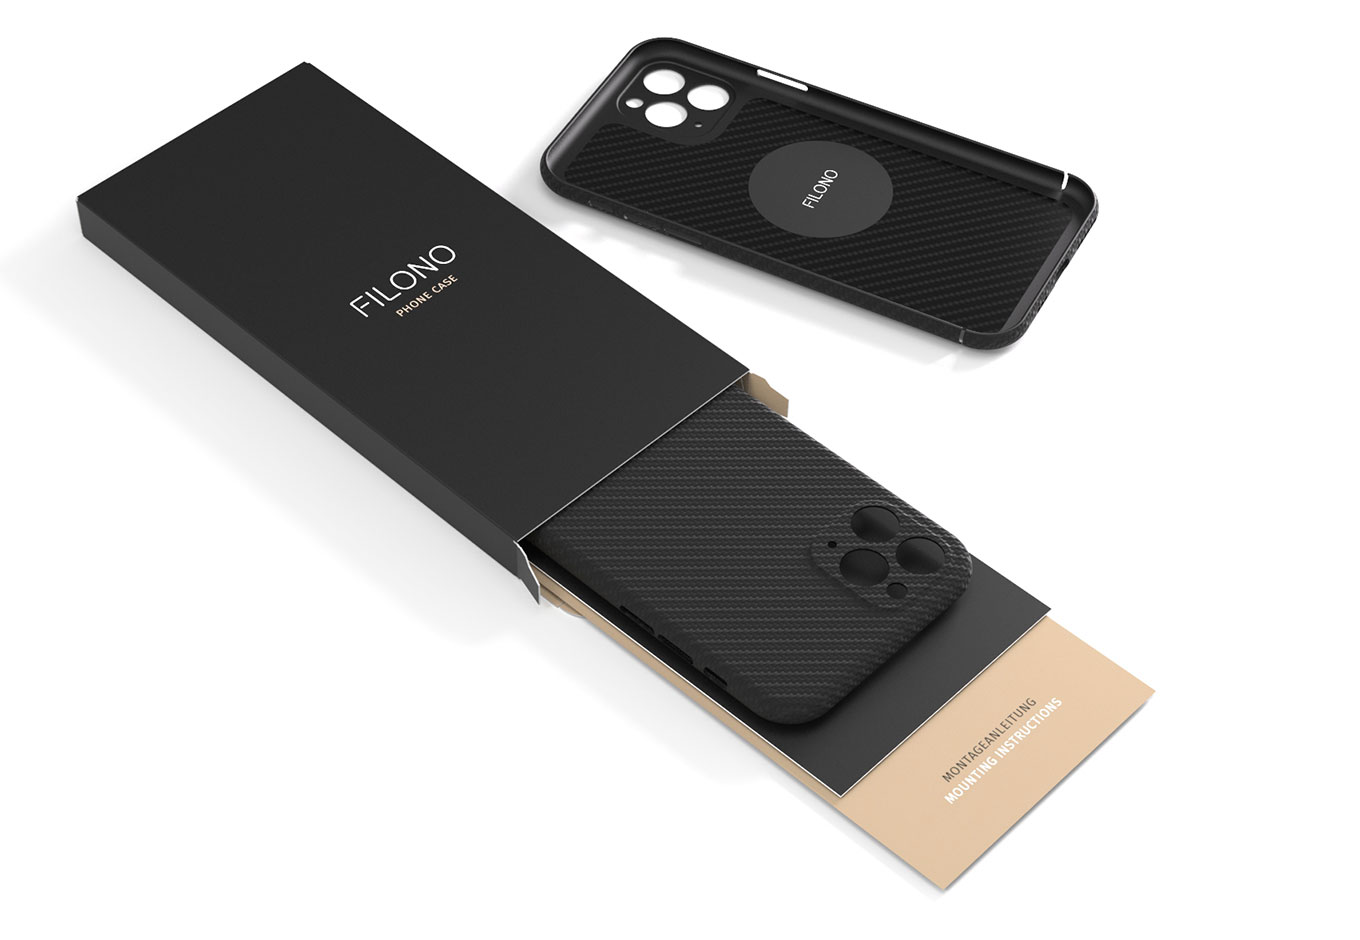 FILONO Phone Case Packaging